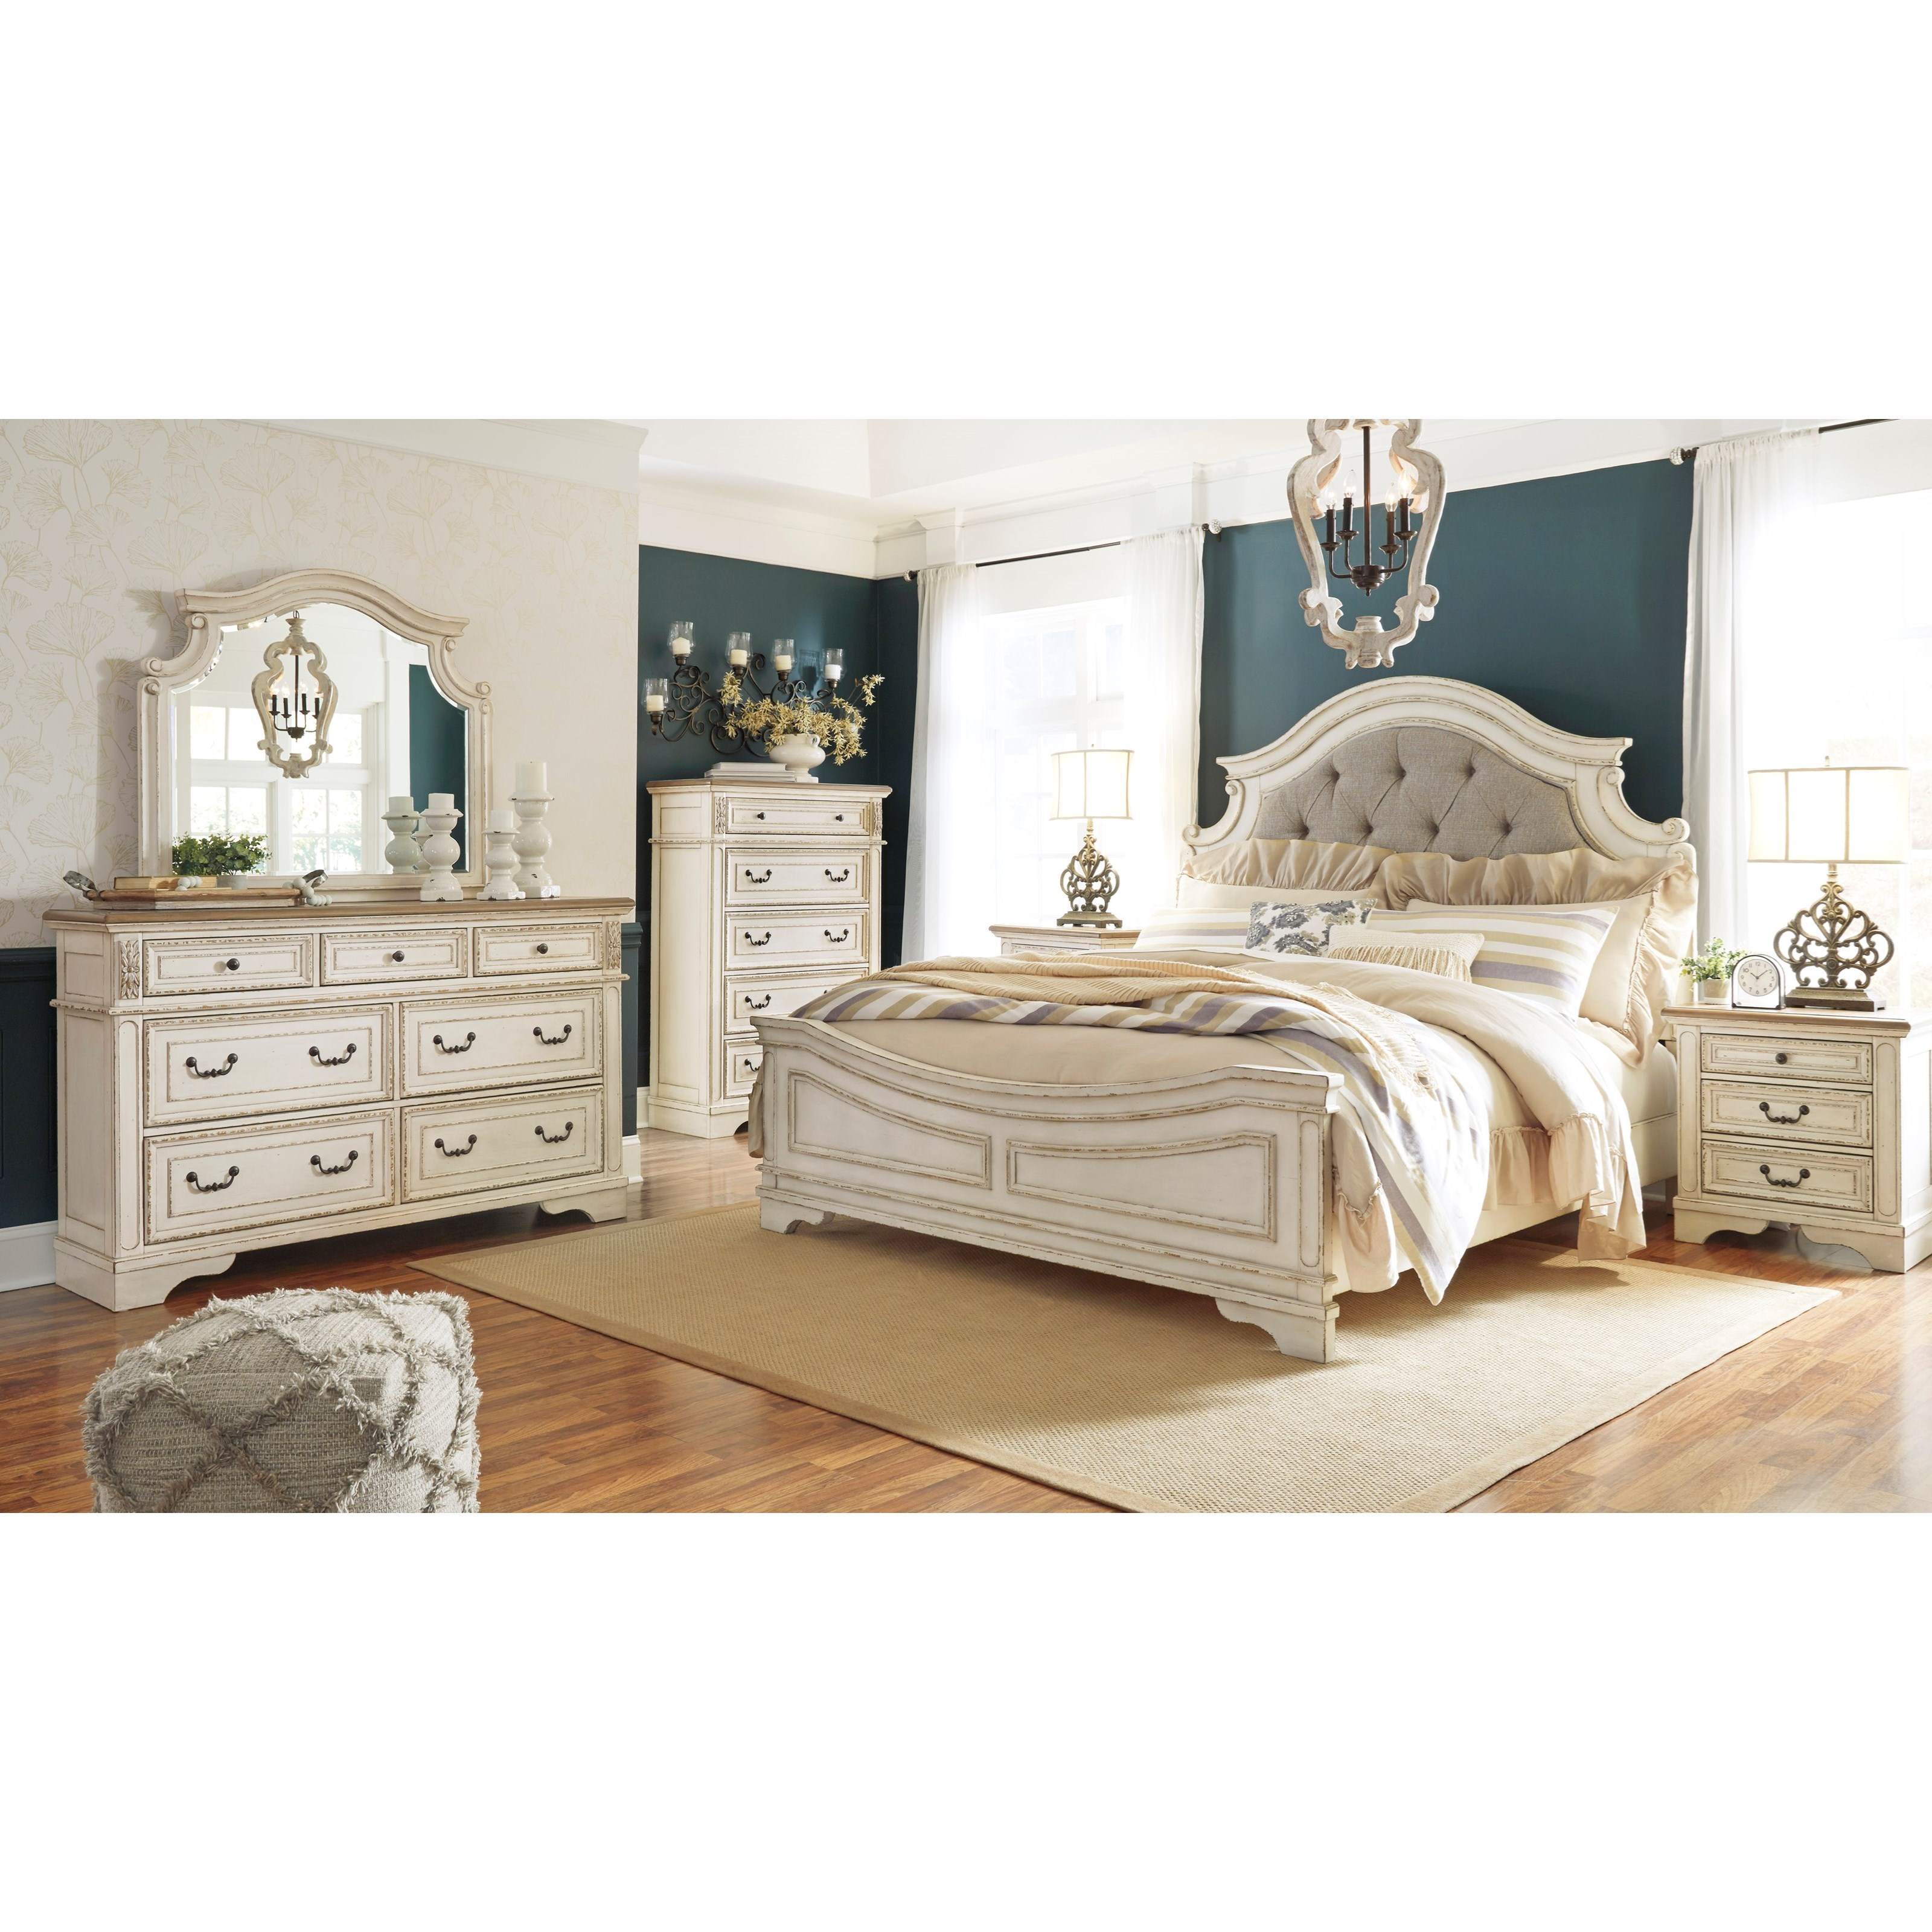 Realyn Queen Bedroom Group by Signature Design by Ashley at Northeast Factory Direct